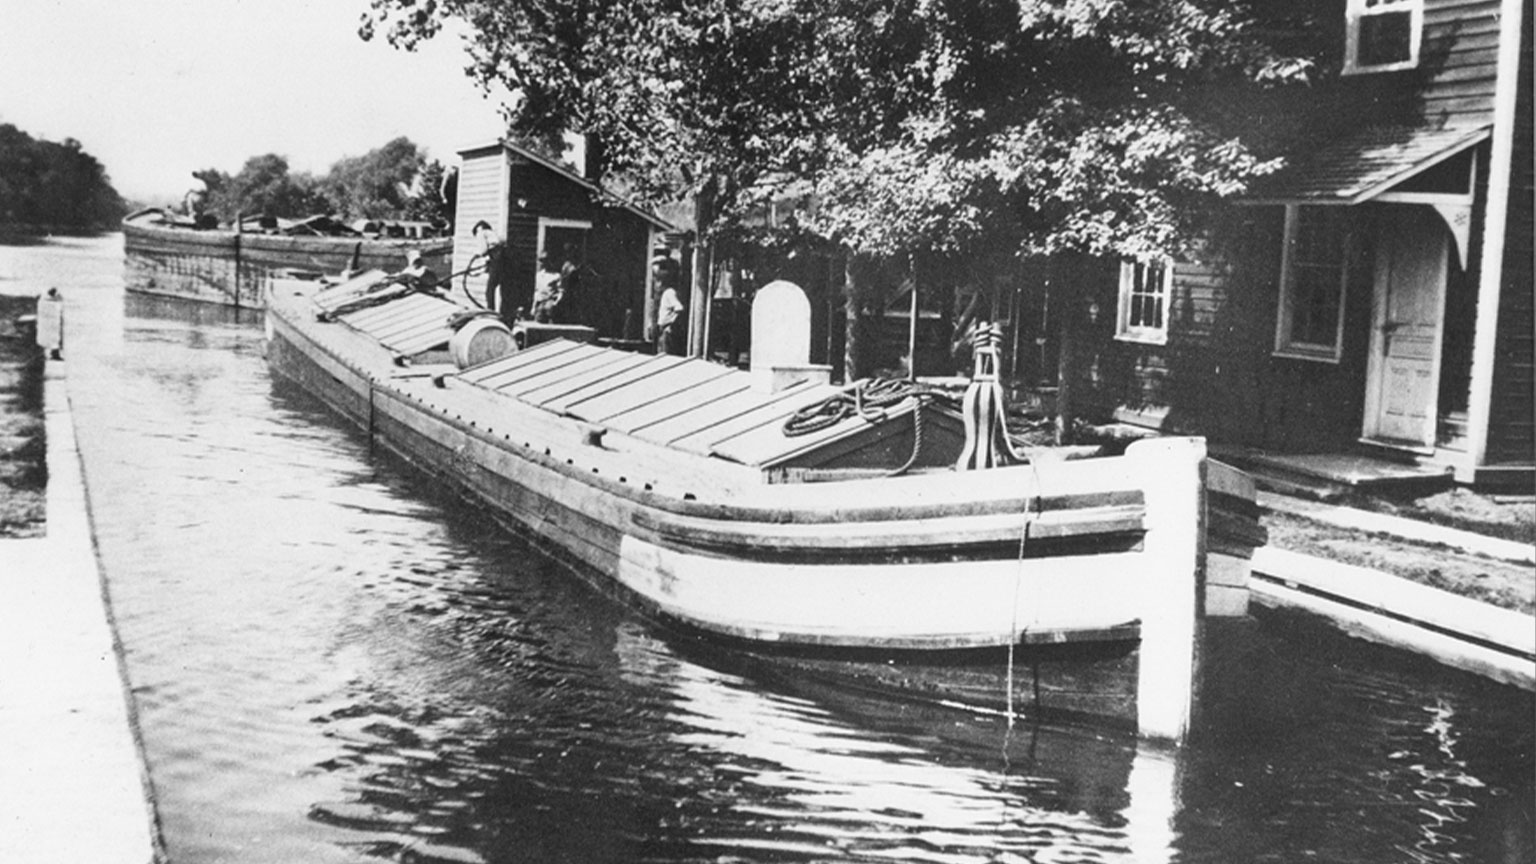 Here a hinge canal boat sits tied up to the banks in Freemansburg.